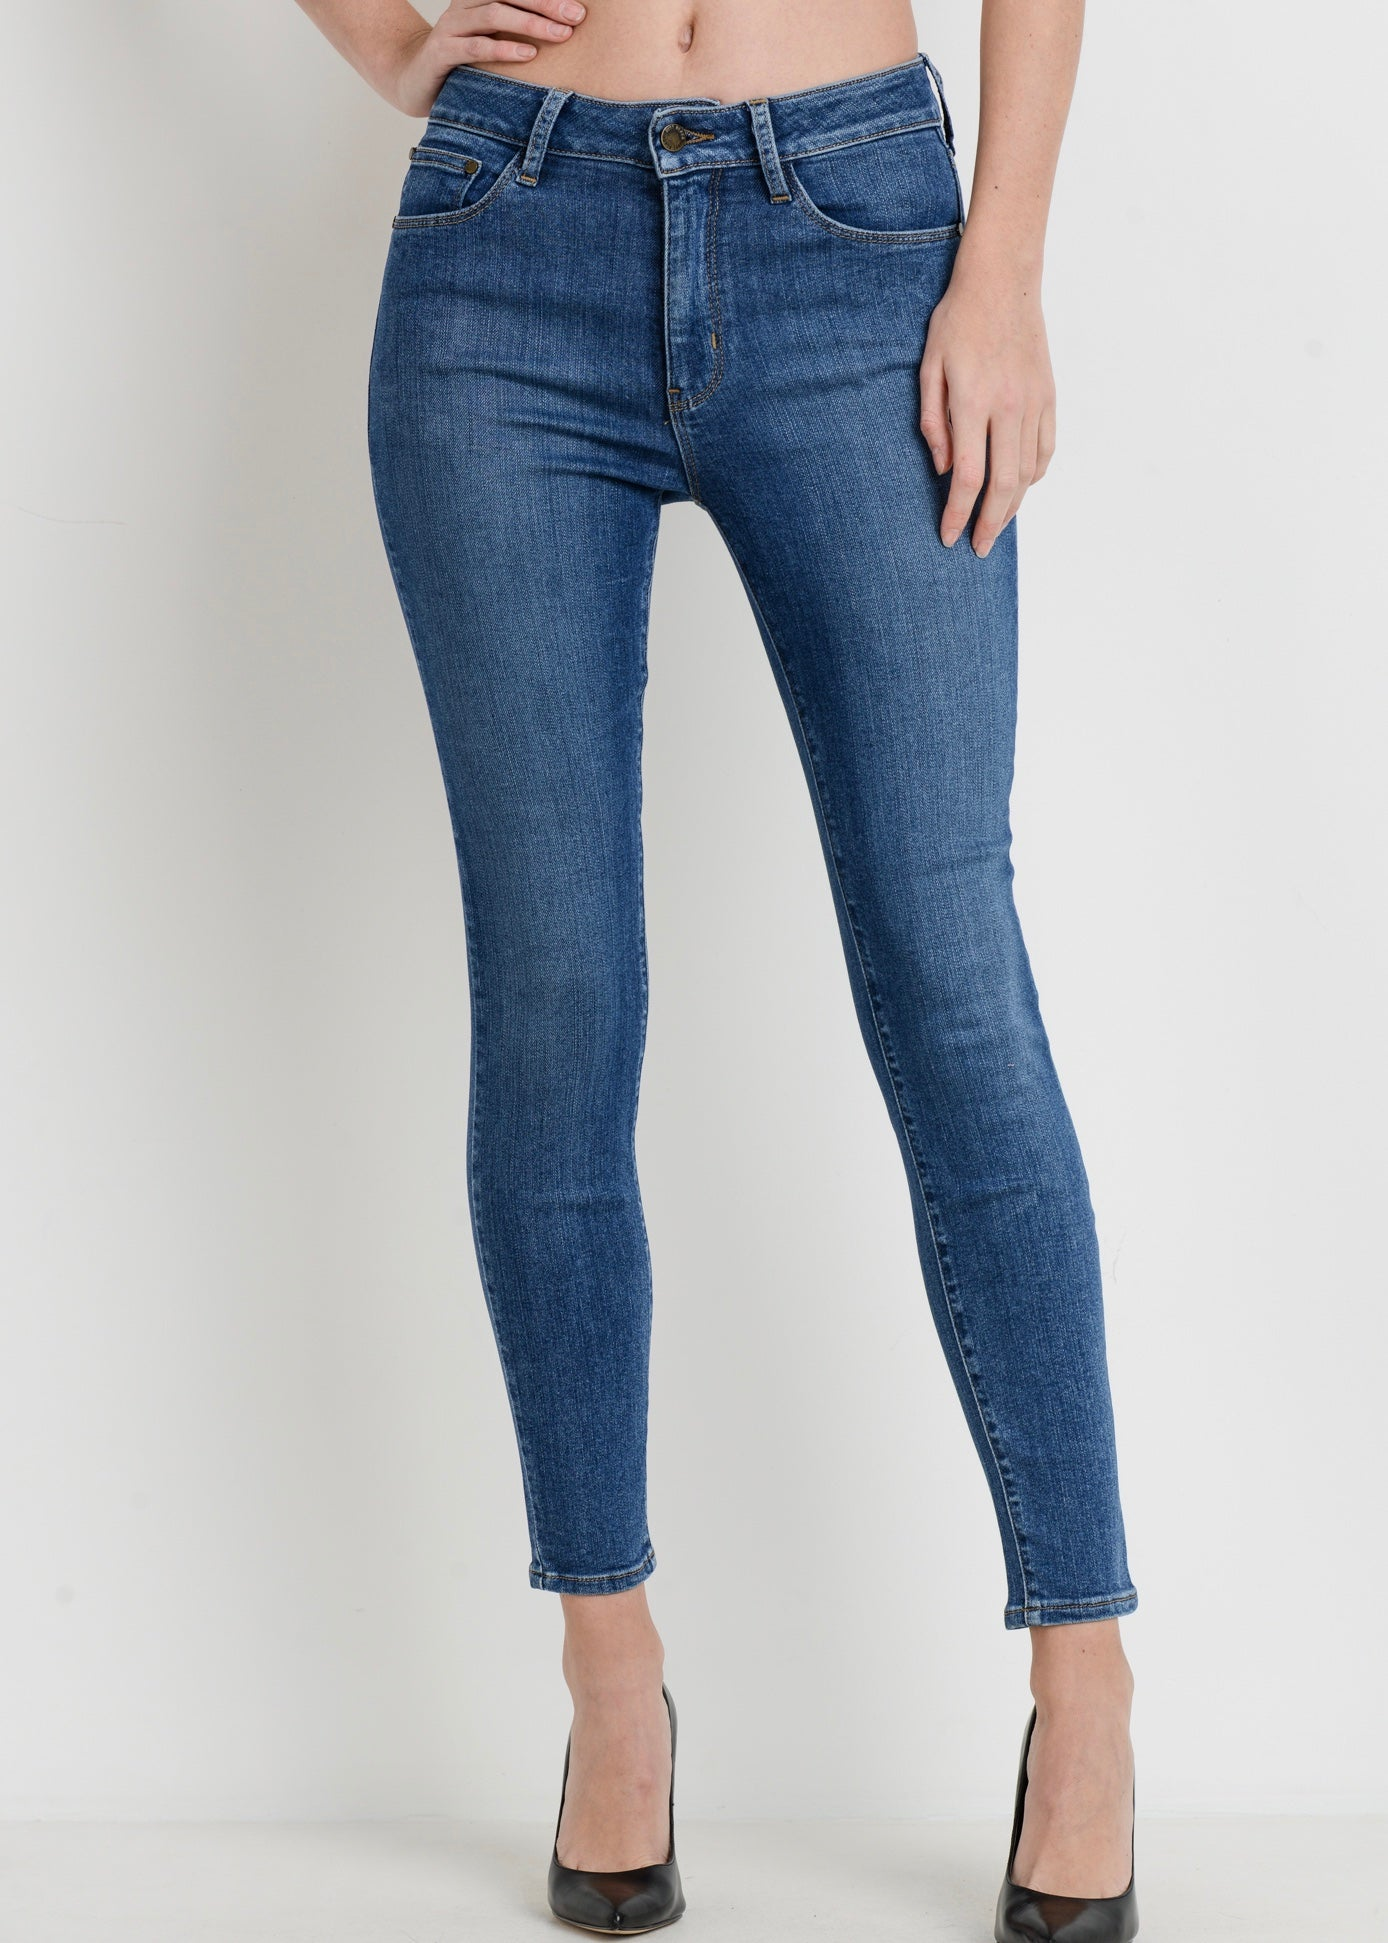 JUST BLACK BP175J HIGH RISE BASIC SKINNY JEAN